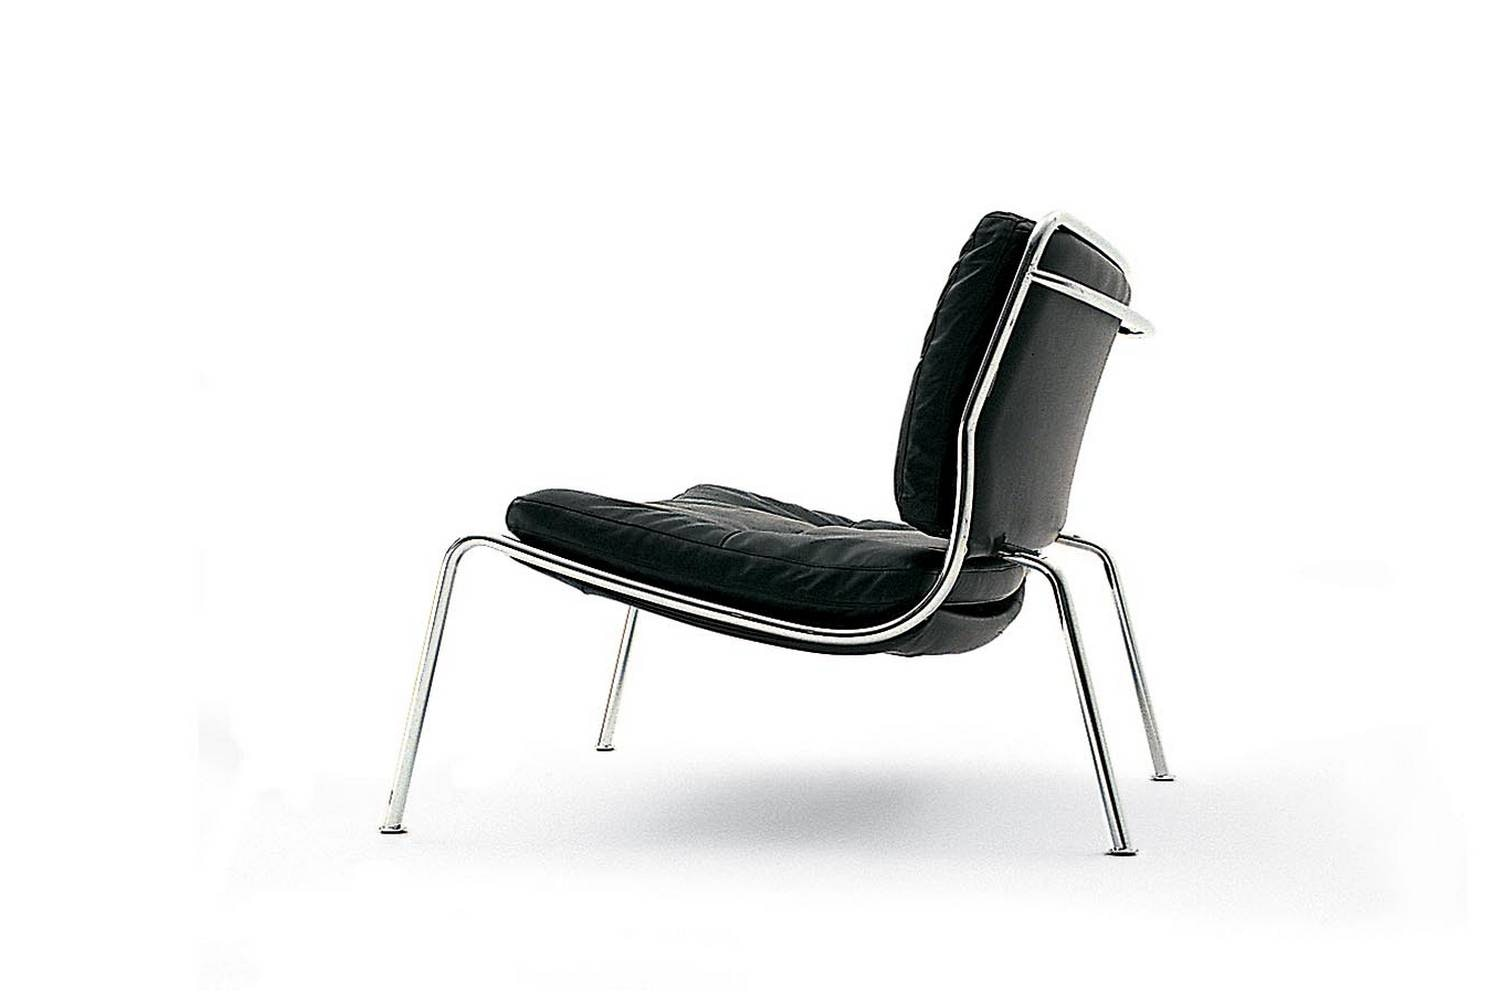 Frog Armchair in Leather by Piero Lissoni for Living Divani